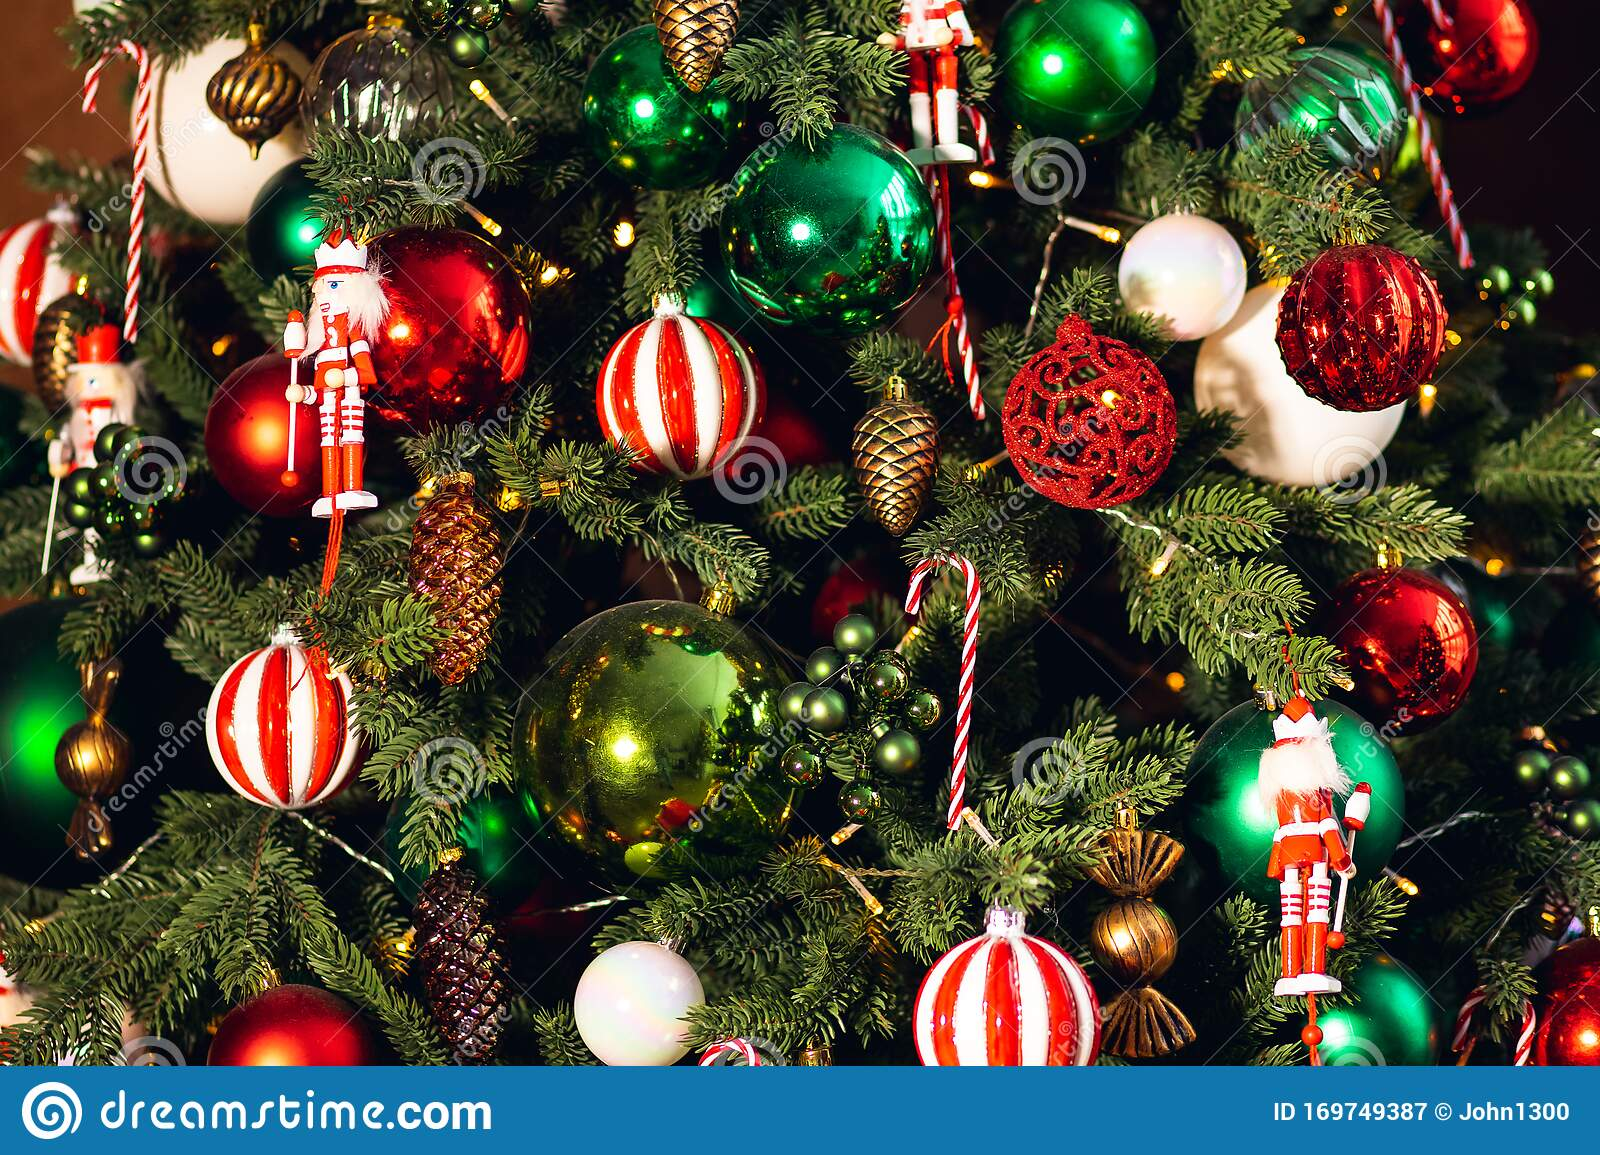 Decorated Christmas Tree Red And Green Color Close Up Of Toys And Decor Striped Candy Stock Image Image Of Decorate Macro 169749387